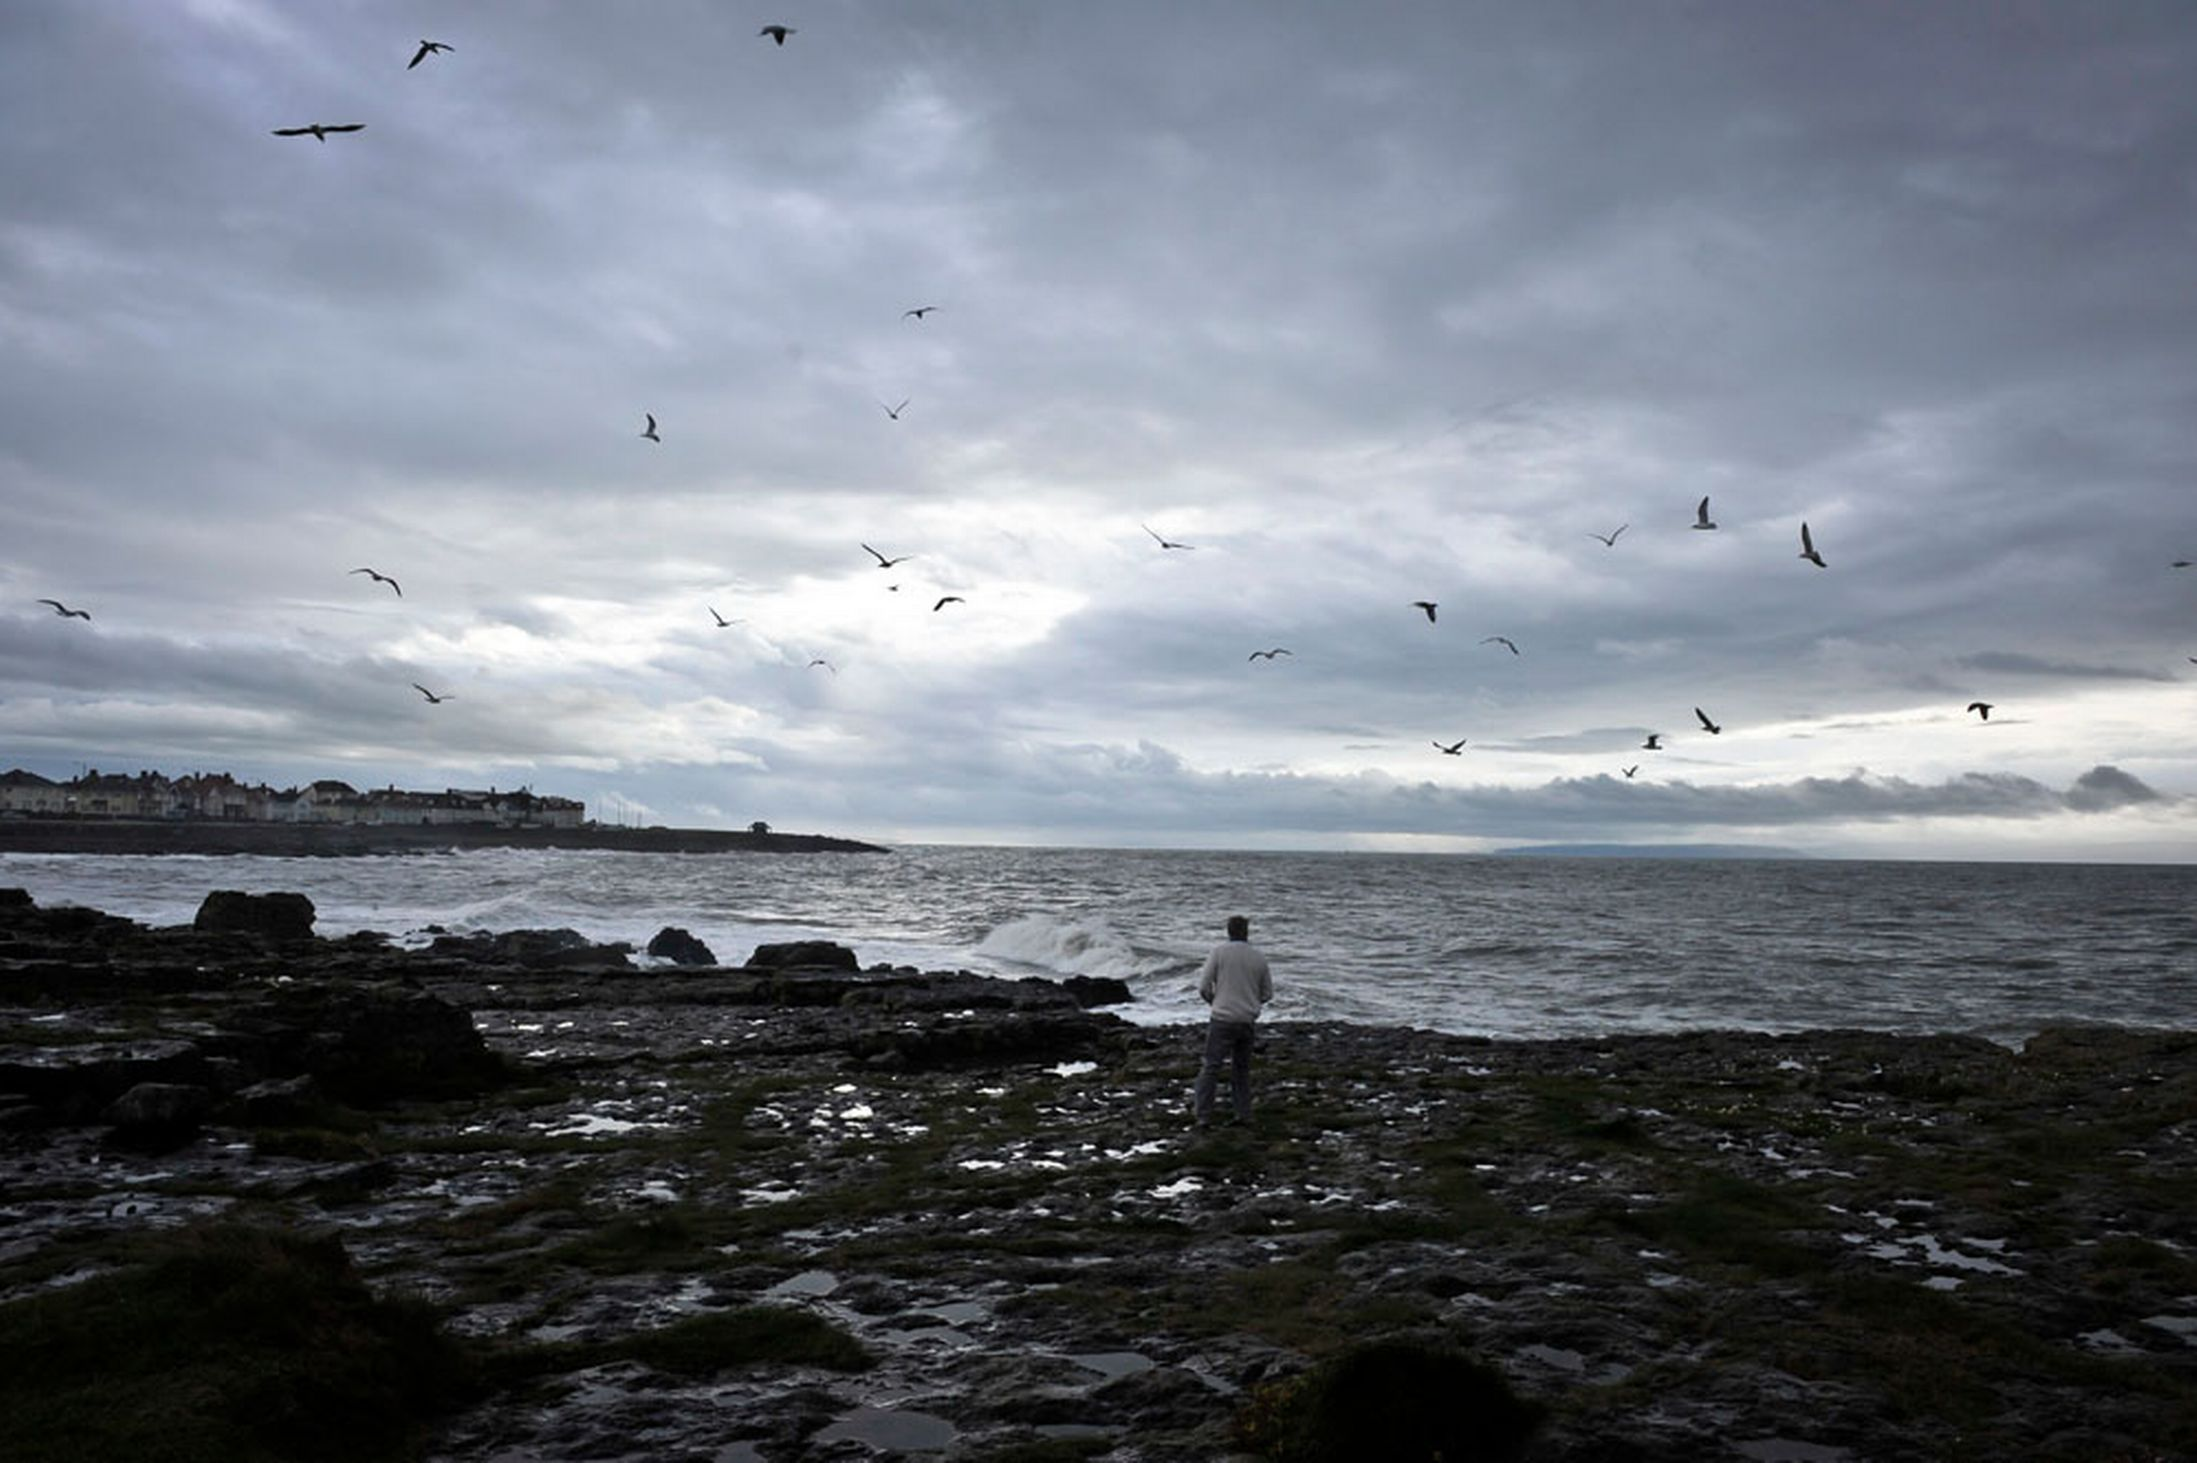 A-man-feeds-seagulls-by-the-sea-at-Porthcawl-Wales-beneath-stormy-skies-22nd-October-2641152